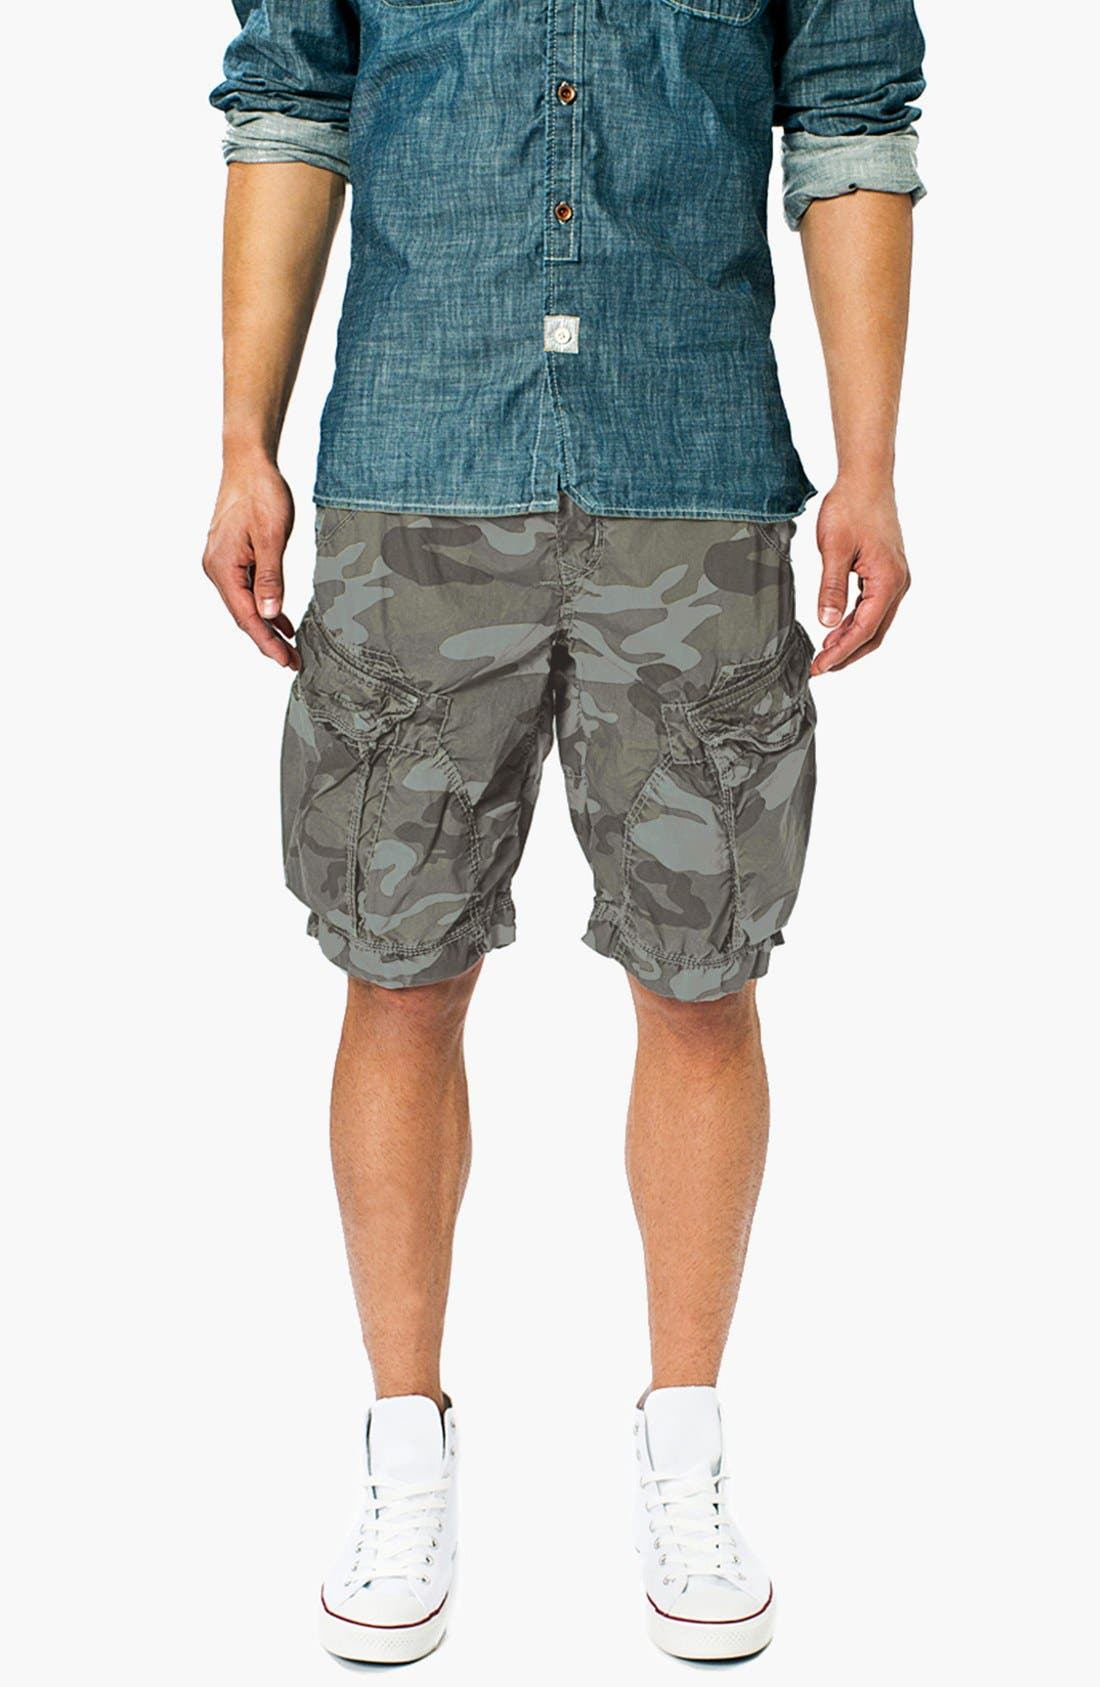 Main Image - Union 'New Duke' Camo Cargo Shorts